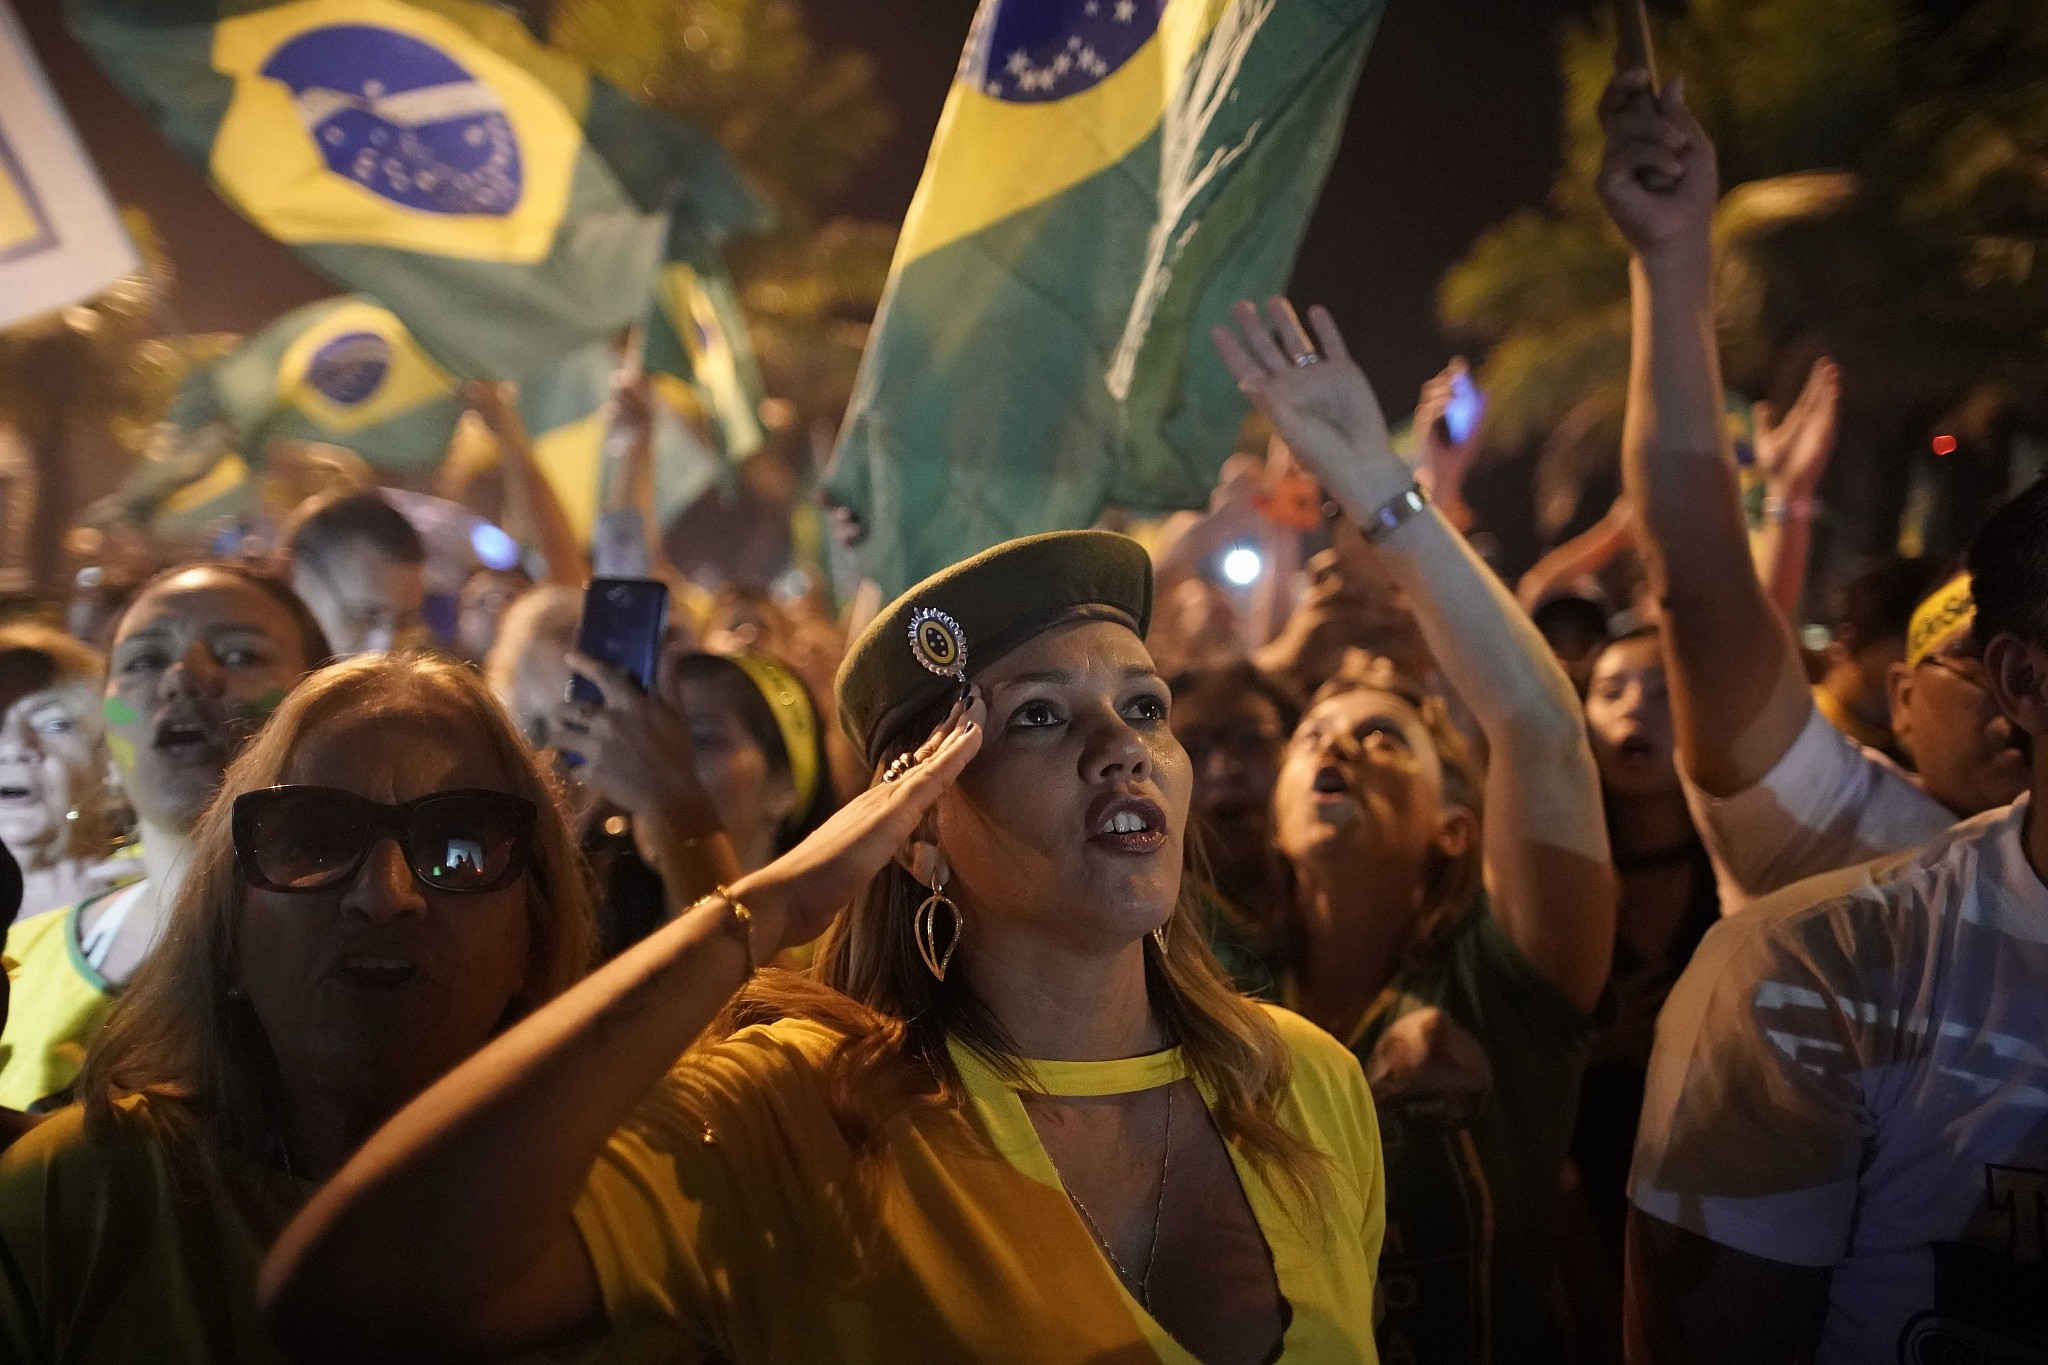 Brazil's leftist parties to boycott Bolsonaro's inauguration - 12/28/2018 2:33:55 PM